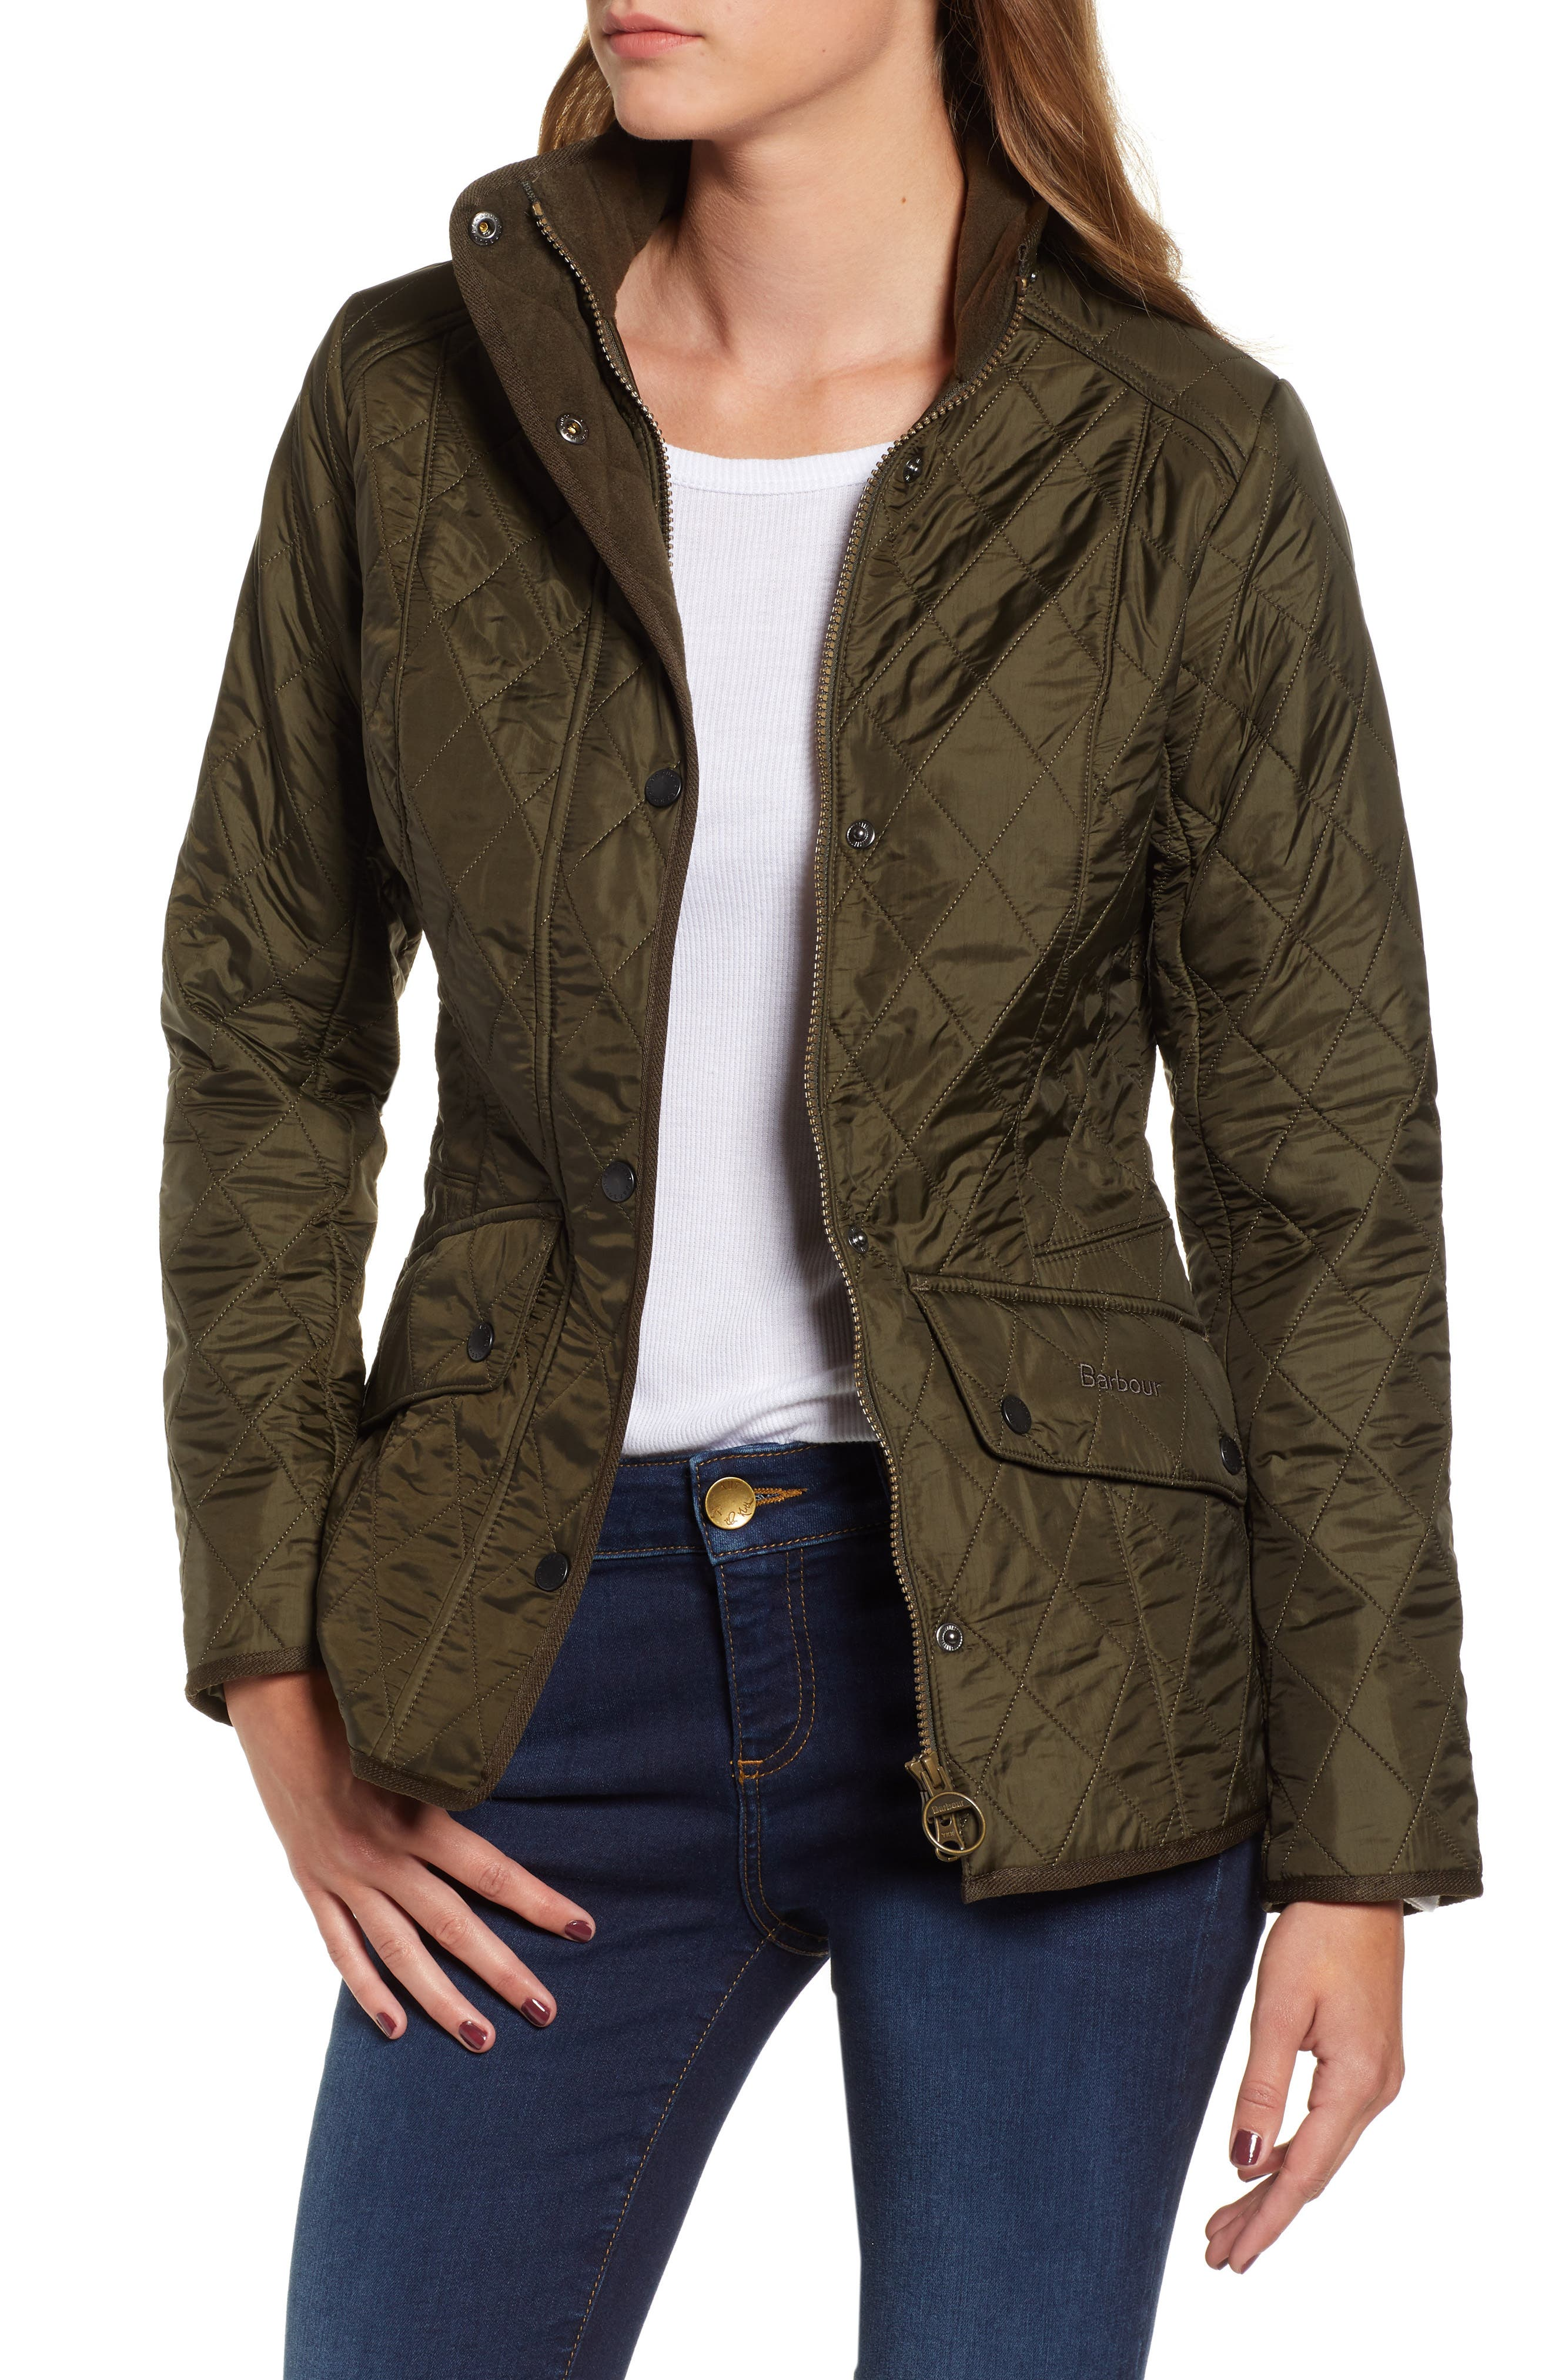 BARBOUR 'Cavalry' Quilted Jacket, Main, color, DARK OLIVE/ OLIVE